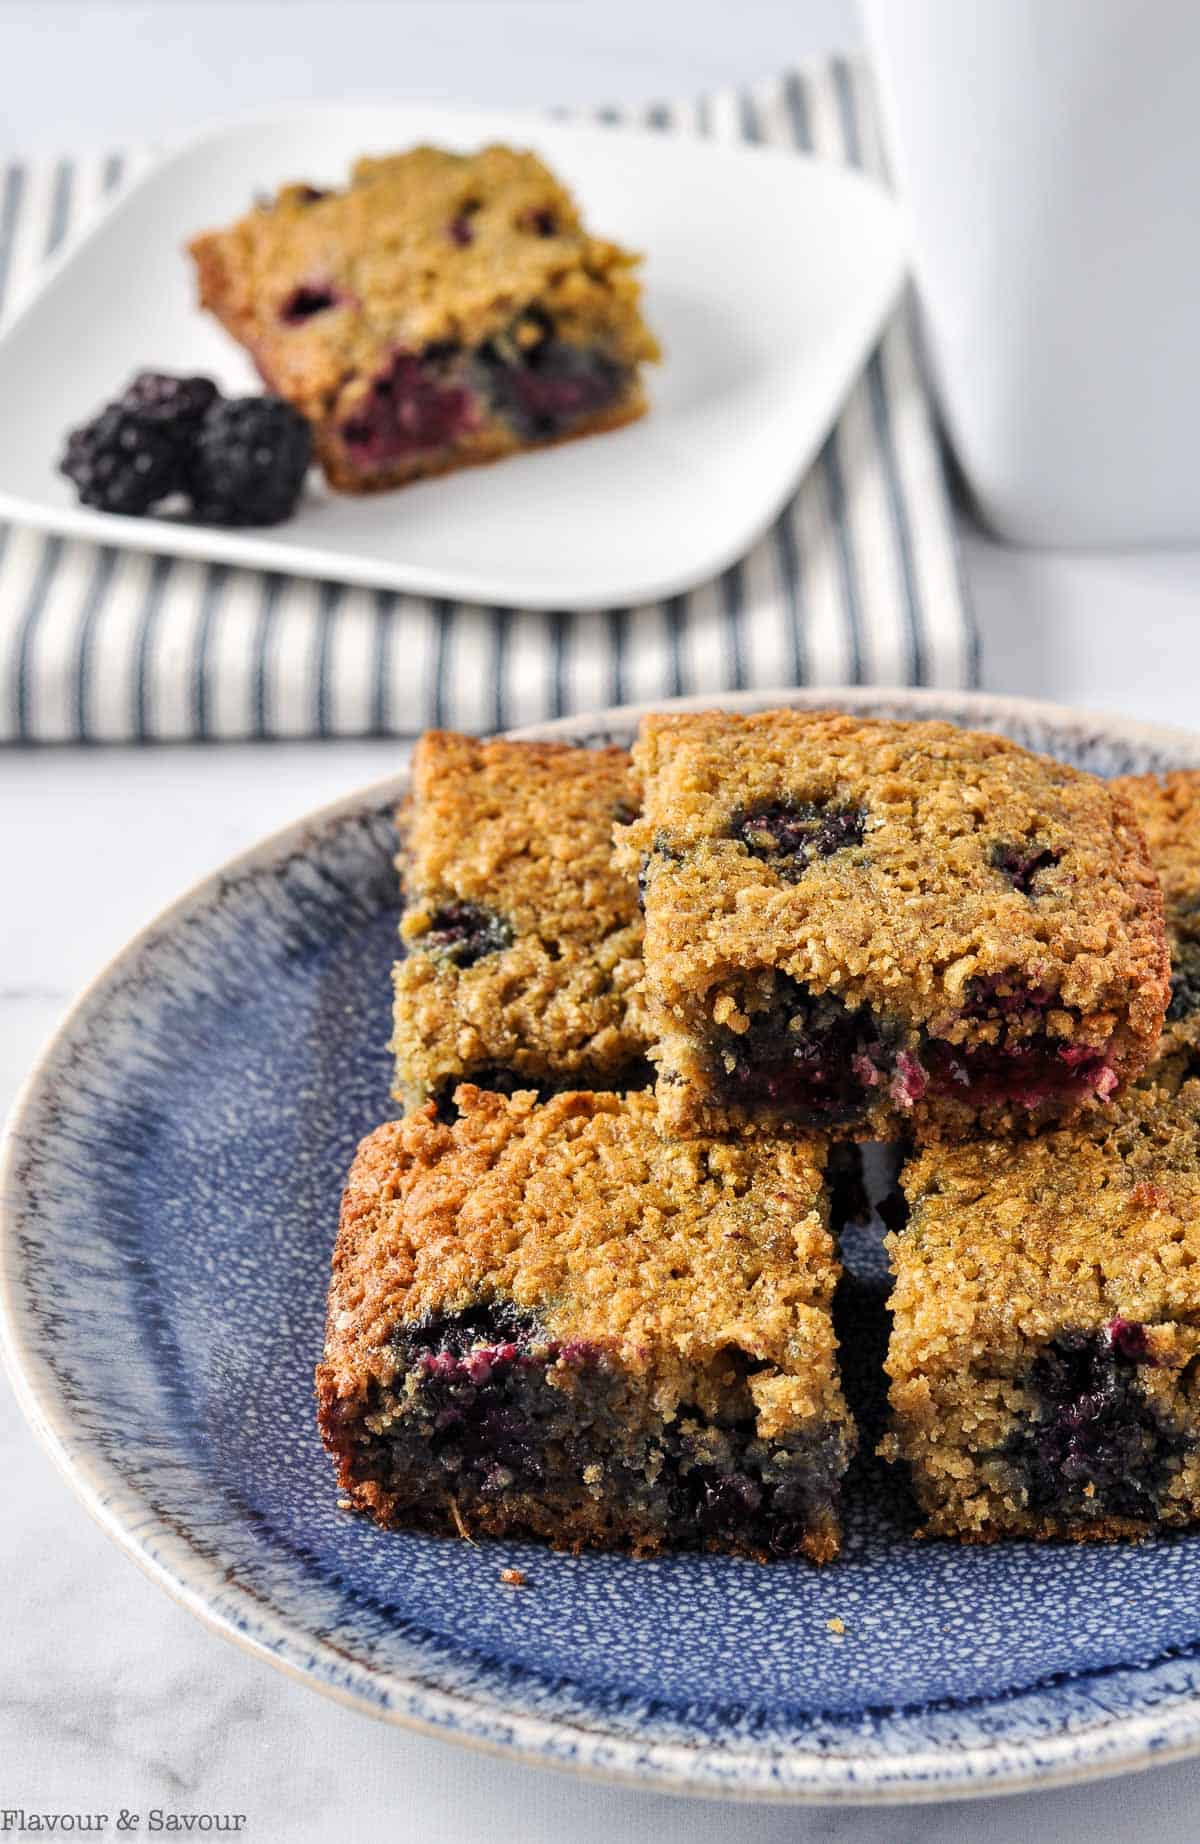 A stack of blackberry oatmeal breakfast bars on a blue stoneware plate.